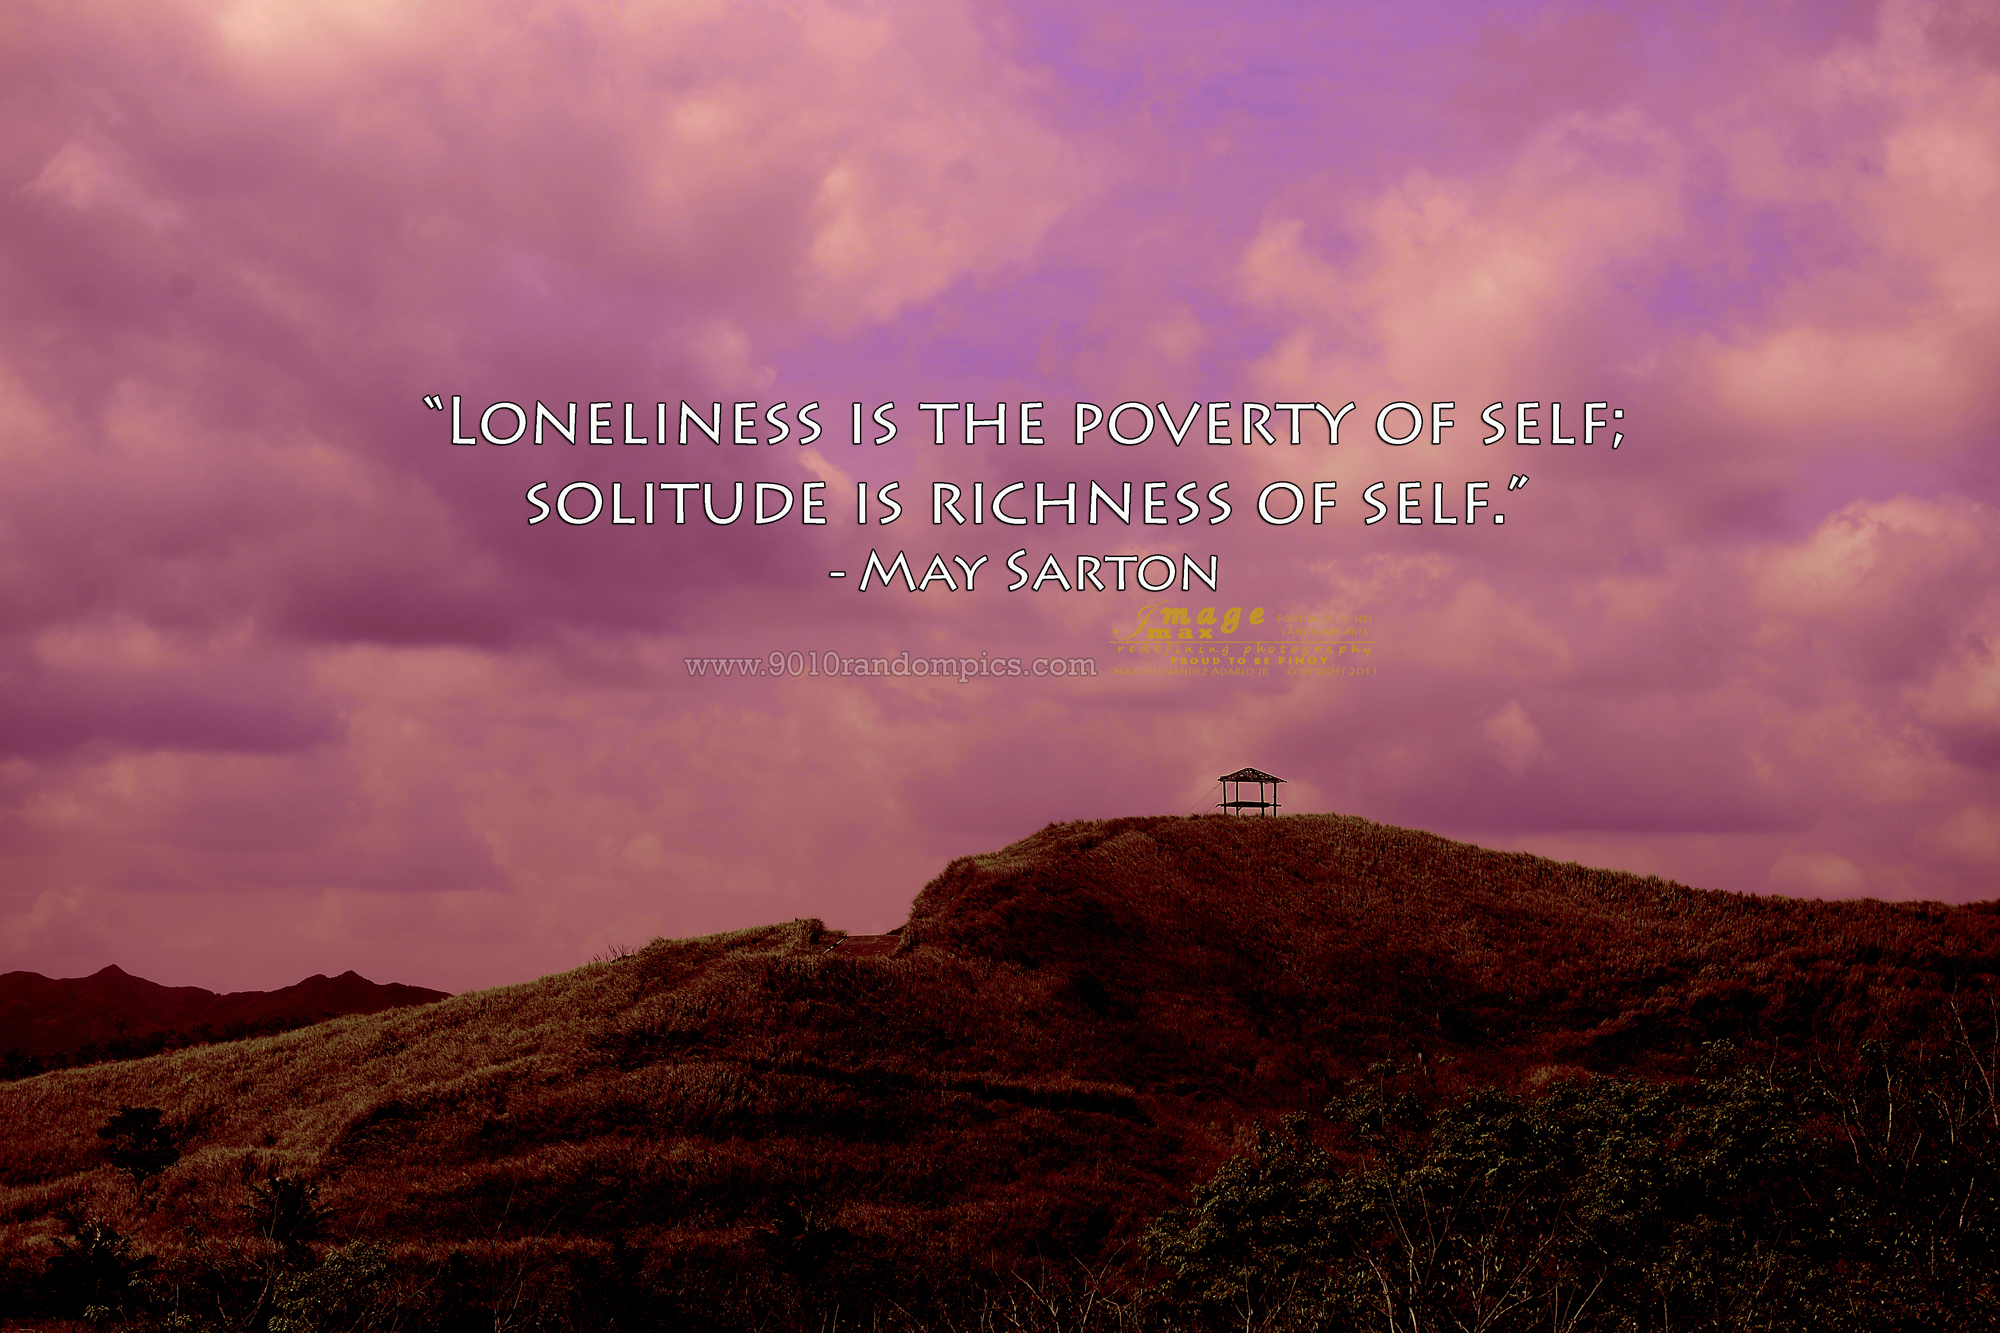 Quotes On Solitude Loneliness Vs Solitude  9010Randompics